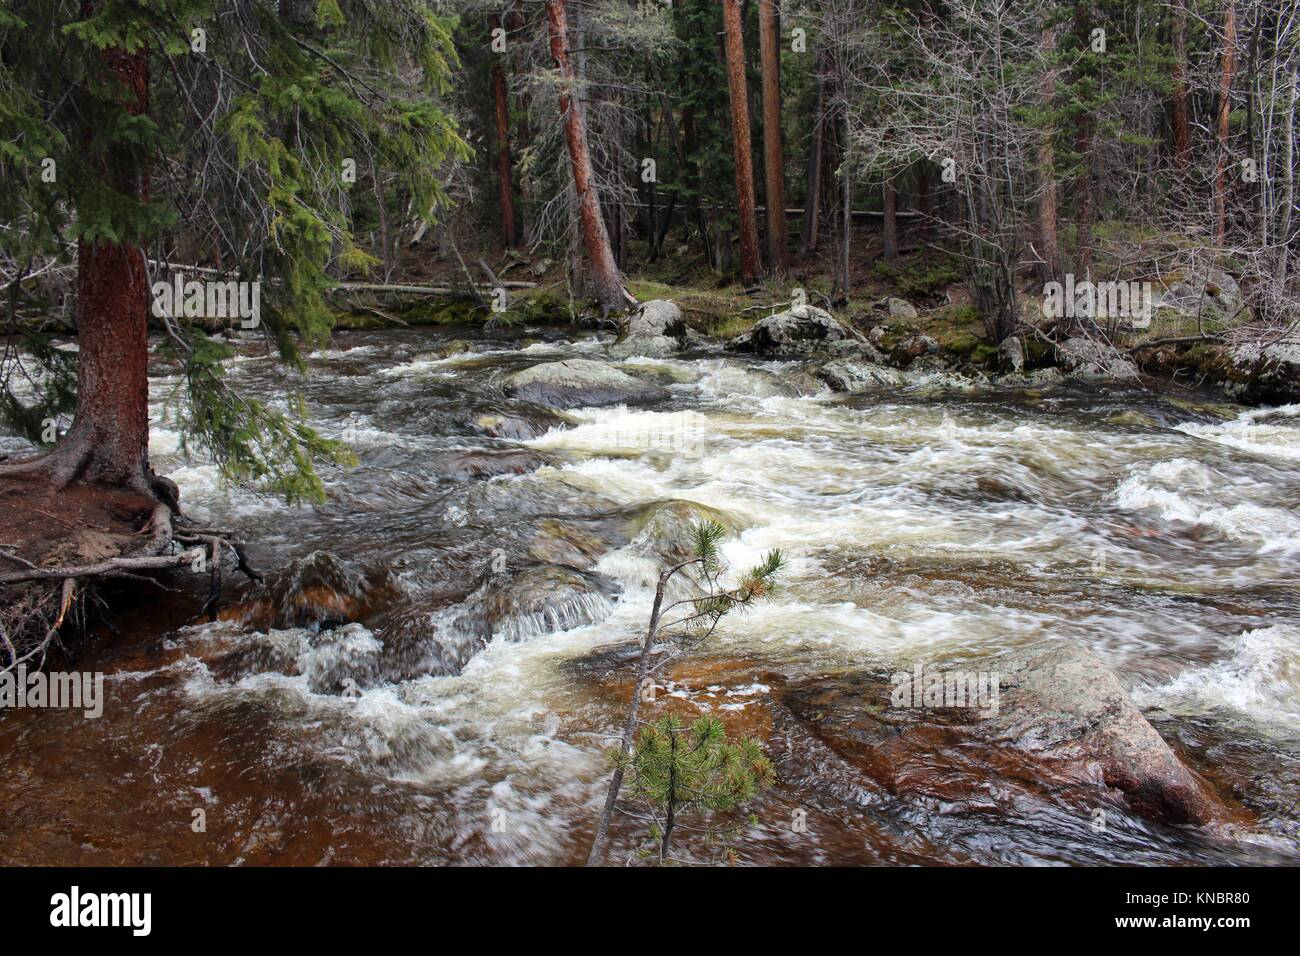 Rushing water of the North Inlet going to Cascade Falls in Rocky Mountain National Park, Estes Park, Colorado, USA - Stock Image